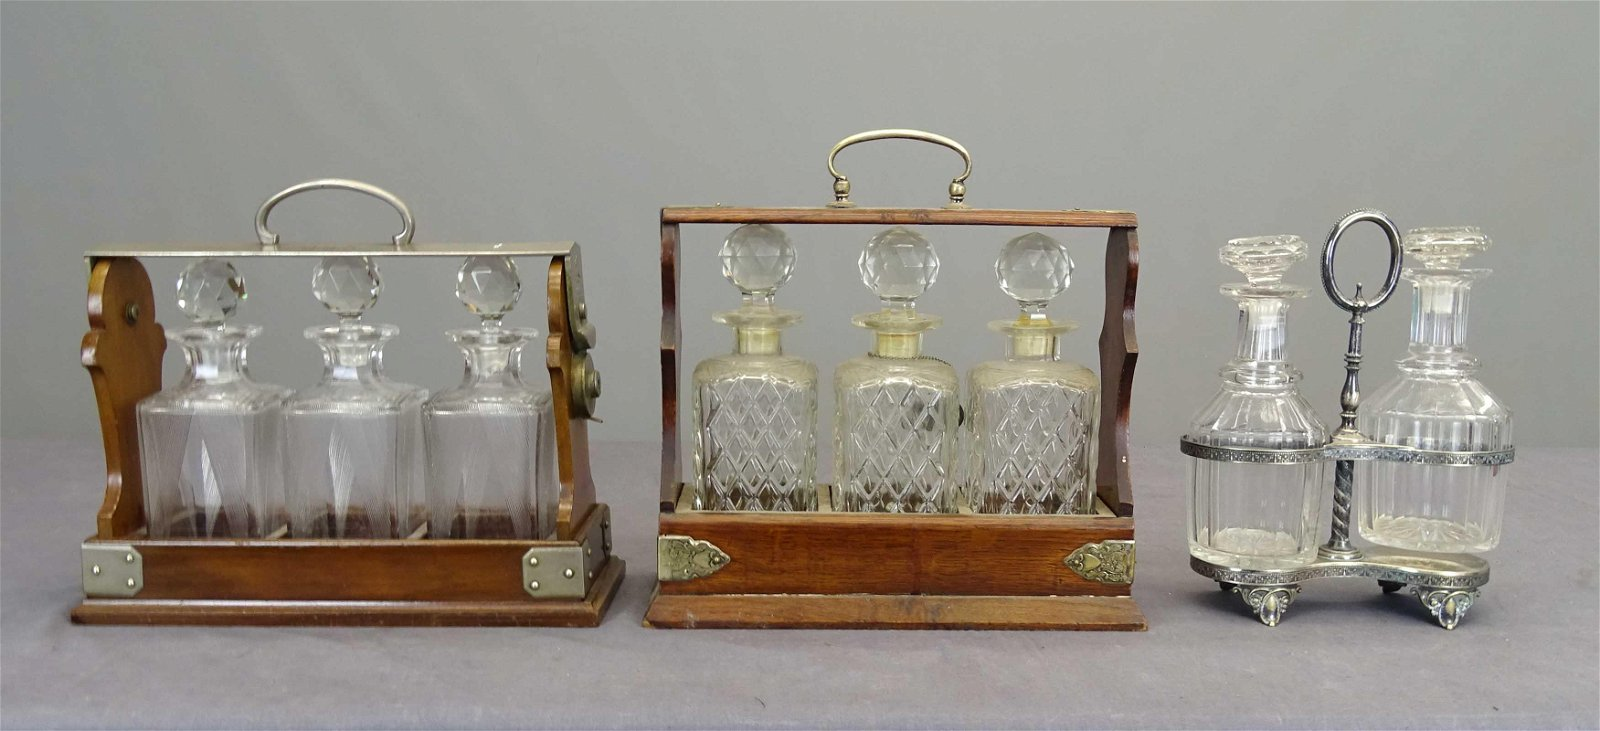 Early Liquor Decanter Sets (Tantalus)